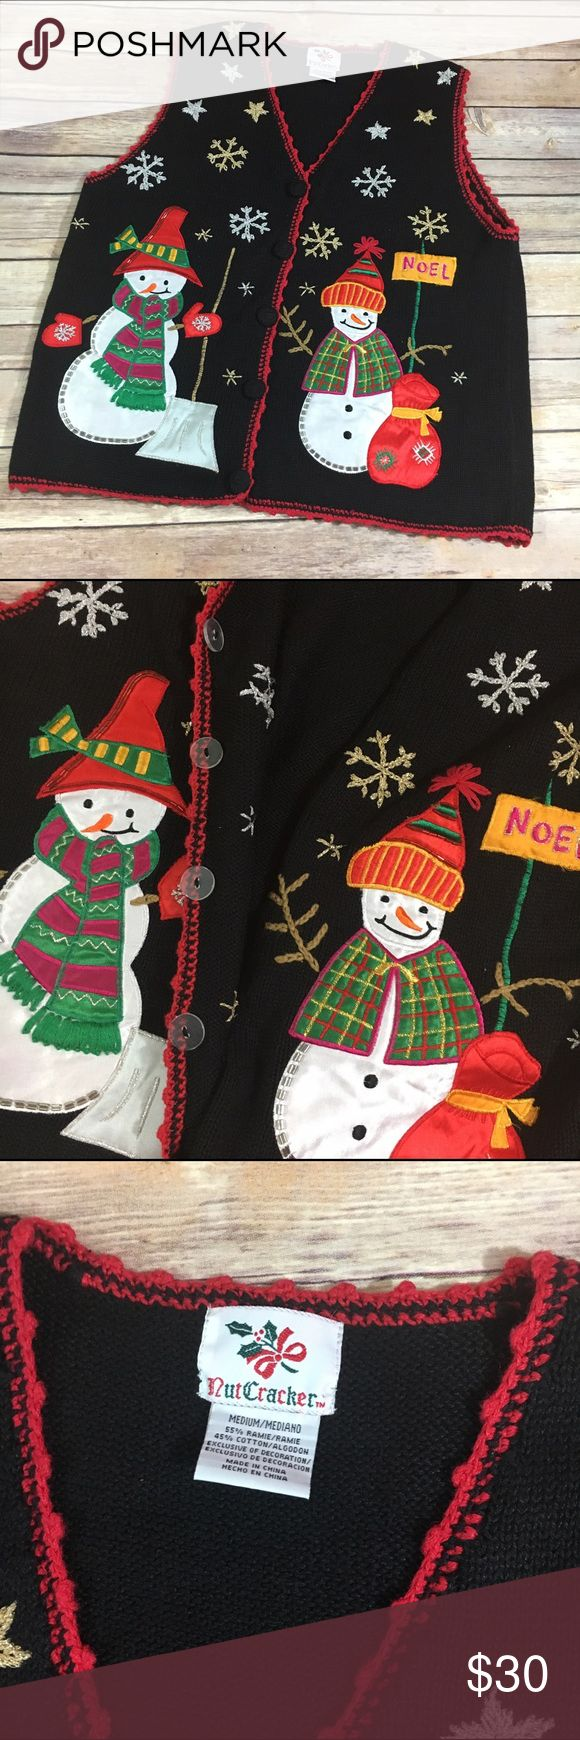 "NutCracker Ugly Christmas Sweater Vest Snowmen M NutCracker Ugly Christmas Sweater Vest Snowmen M  Groovy Christmas sweater vest for your ugly Christmas sweater party or just being ironic.  Or giving to your grandma to add to her collection!  Anything you want to do with this super cool sweater.  Buttons inside, not with the decorative buttons.  24.5"" long 20"" p to p NutCracker Sweaters"